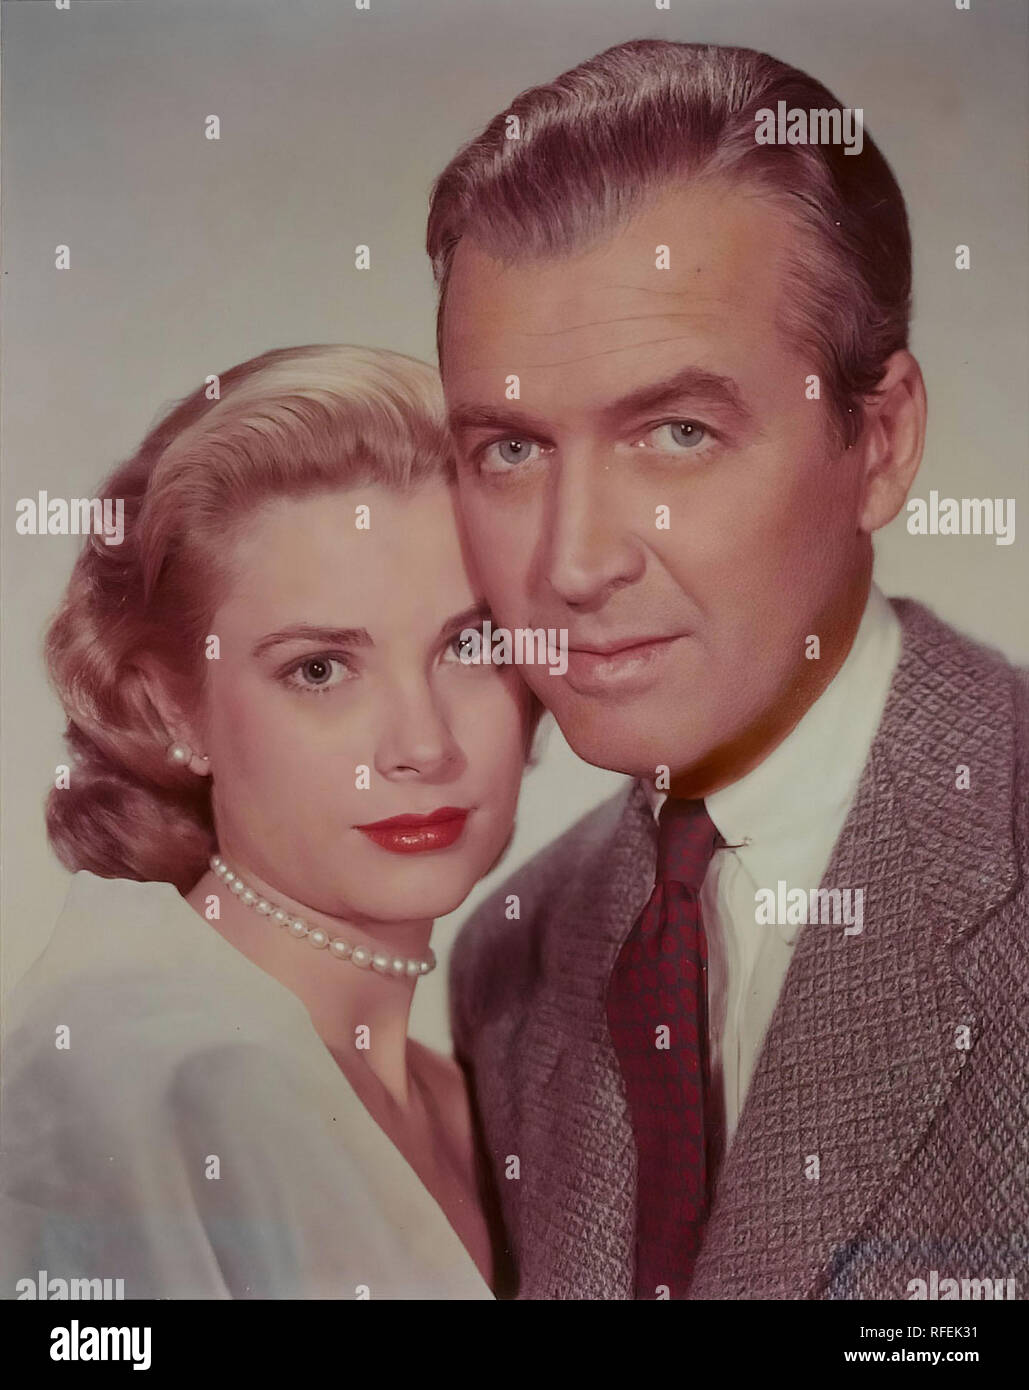 Original film title: REAR WINDOW. English title: REAR WINDOW. Year: 1954. Director: ALFRED HITCHCOCK. Stars: JAMES STEWART; GRACE KELLY. Credit: PARAMOUNT PICTURES / Album - Stock Image